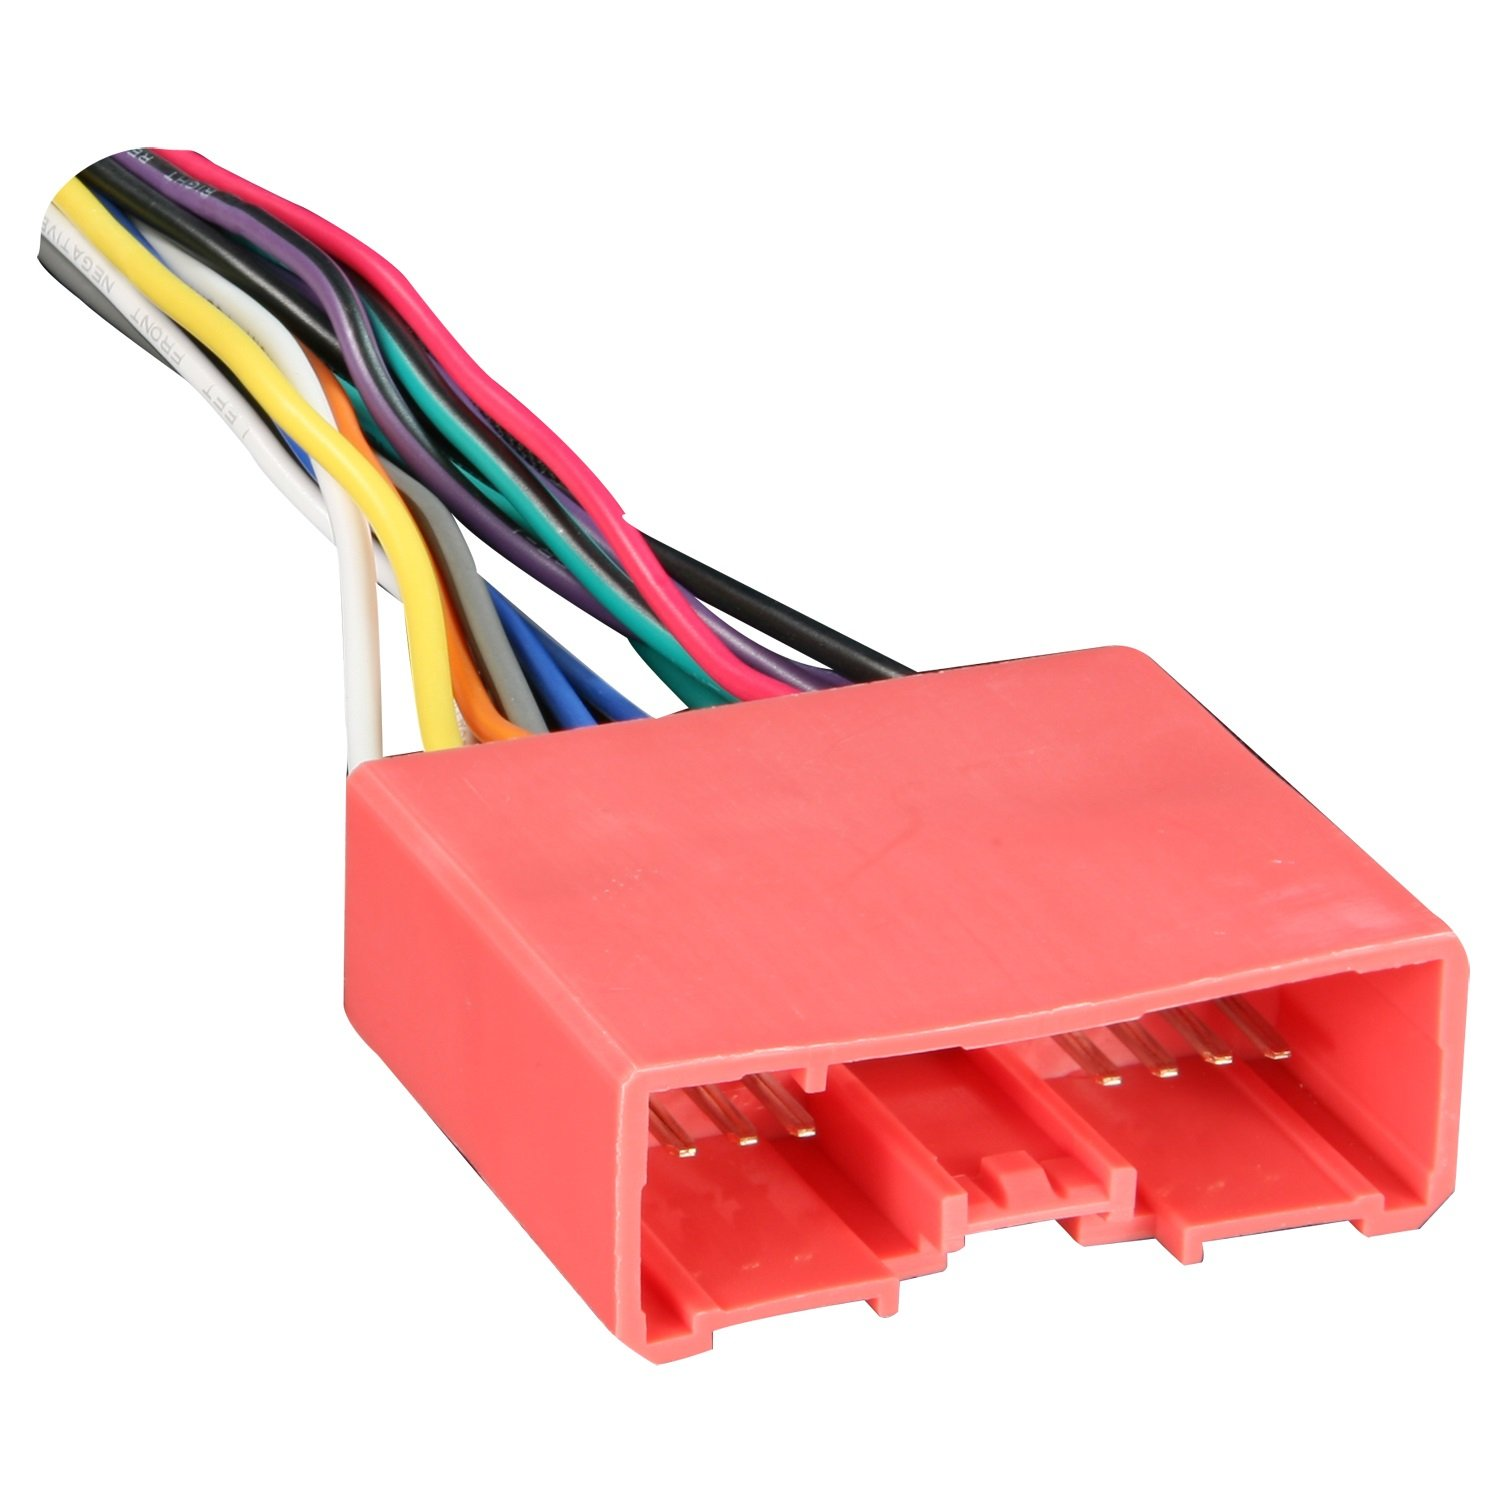 61xRWoZ7Z8L._SL1500_ amazon com metra electronics 70 7903 wiring harness for 2001 up metra radio wiring harness at panicattacktreatment.co